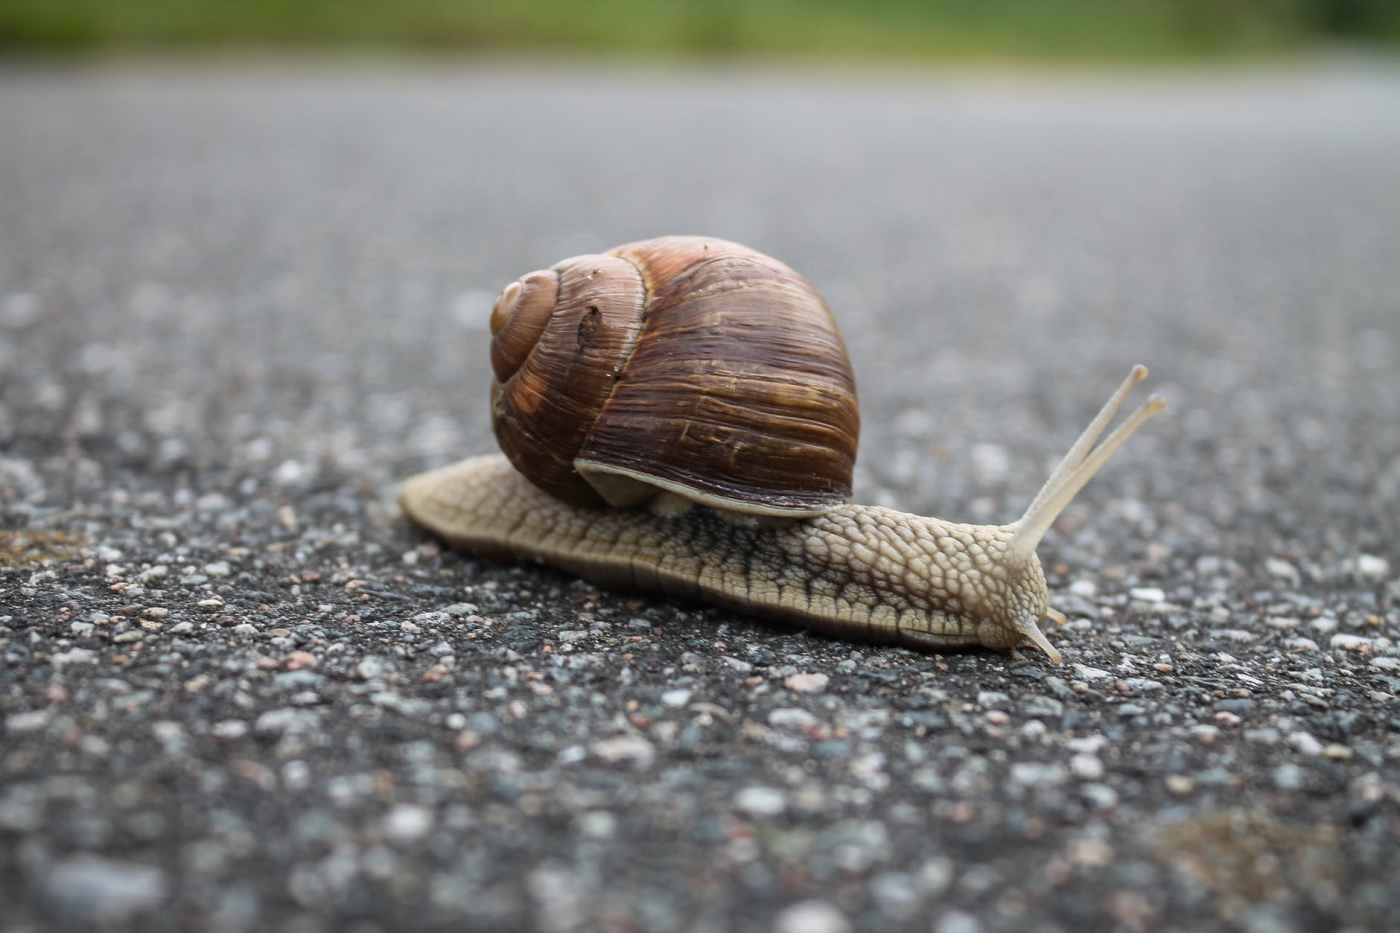 close up of snail on ground